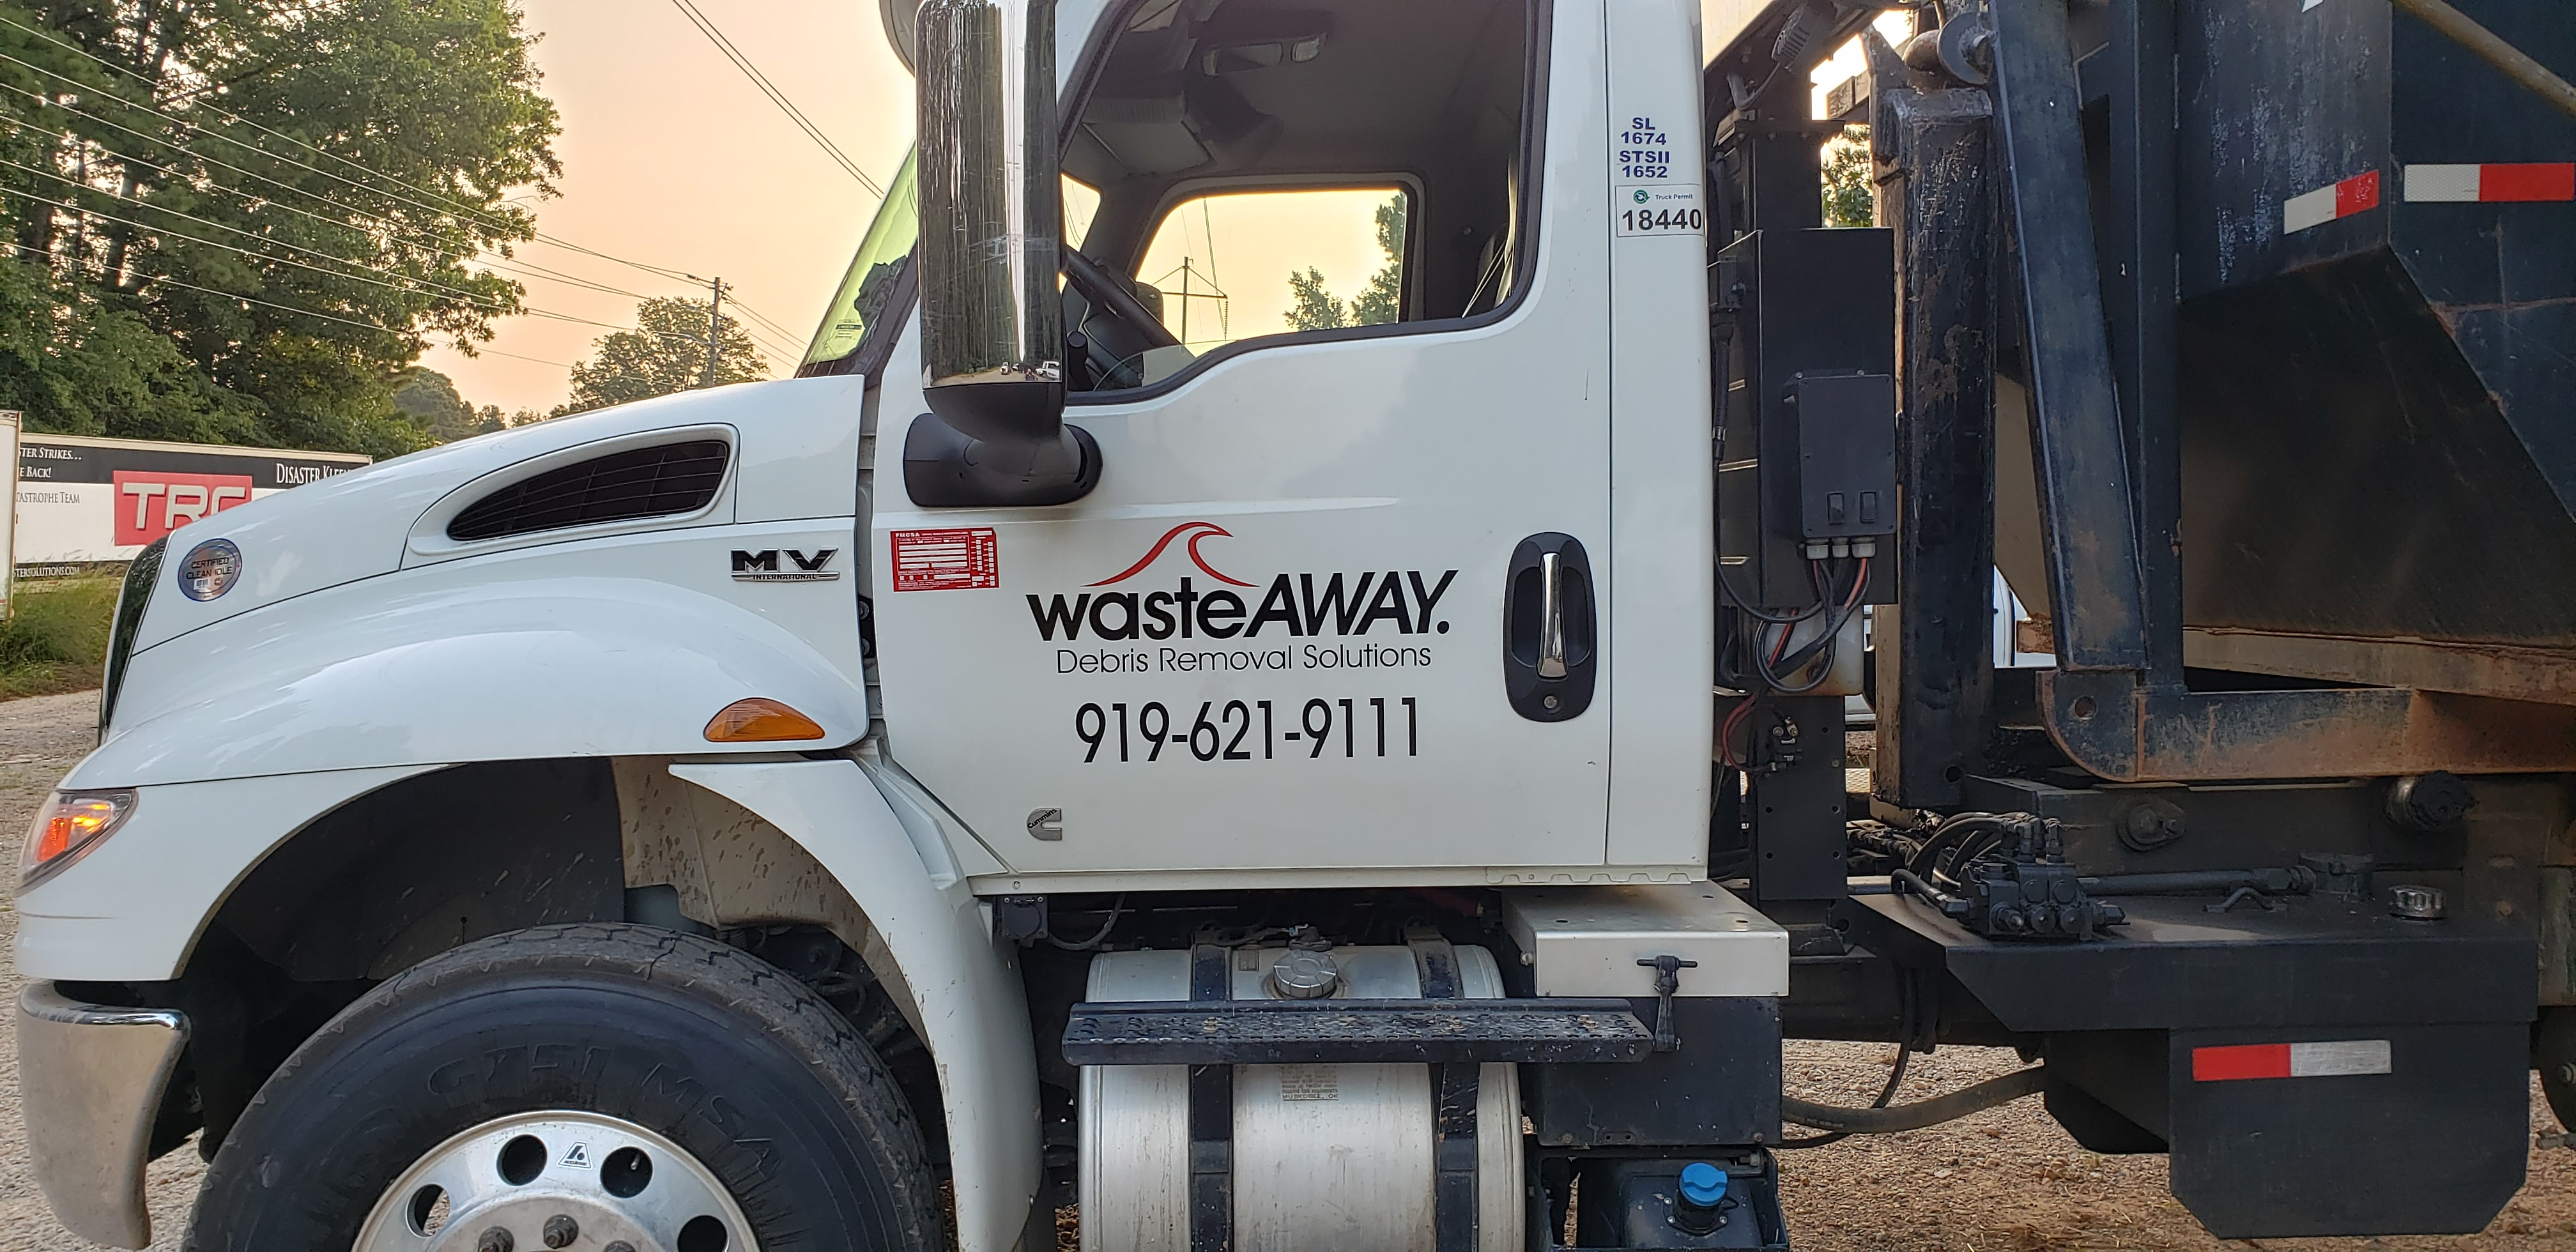 waste away dumpsters